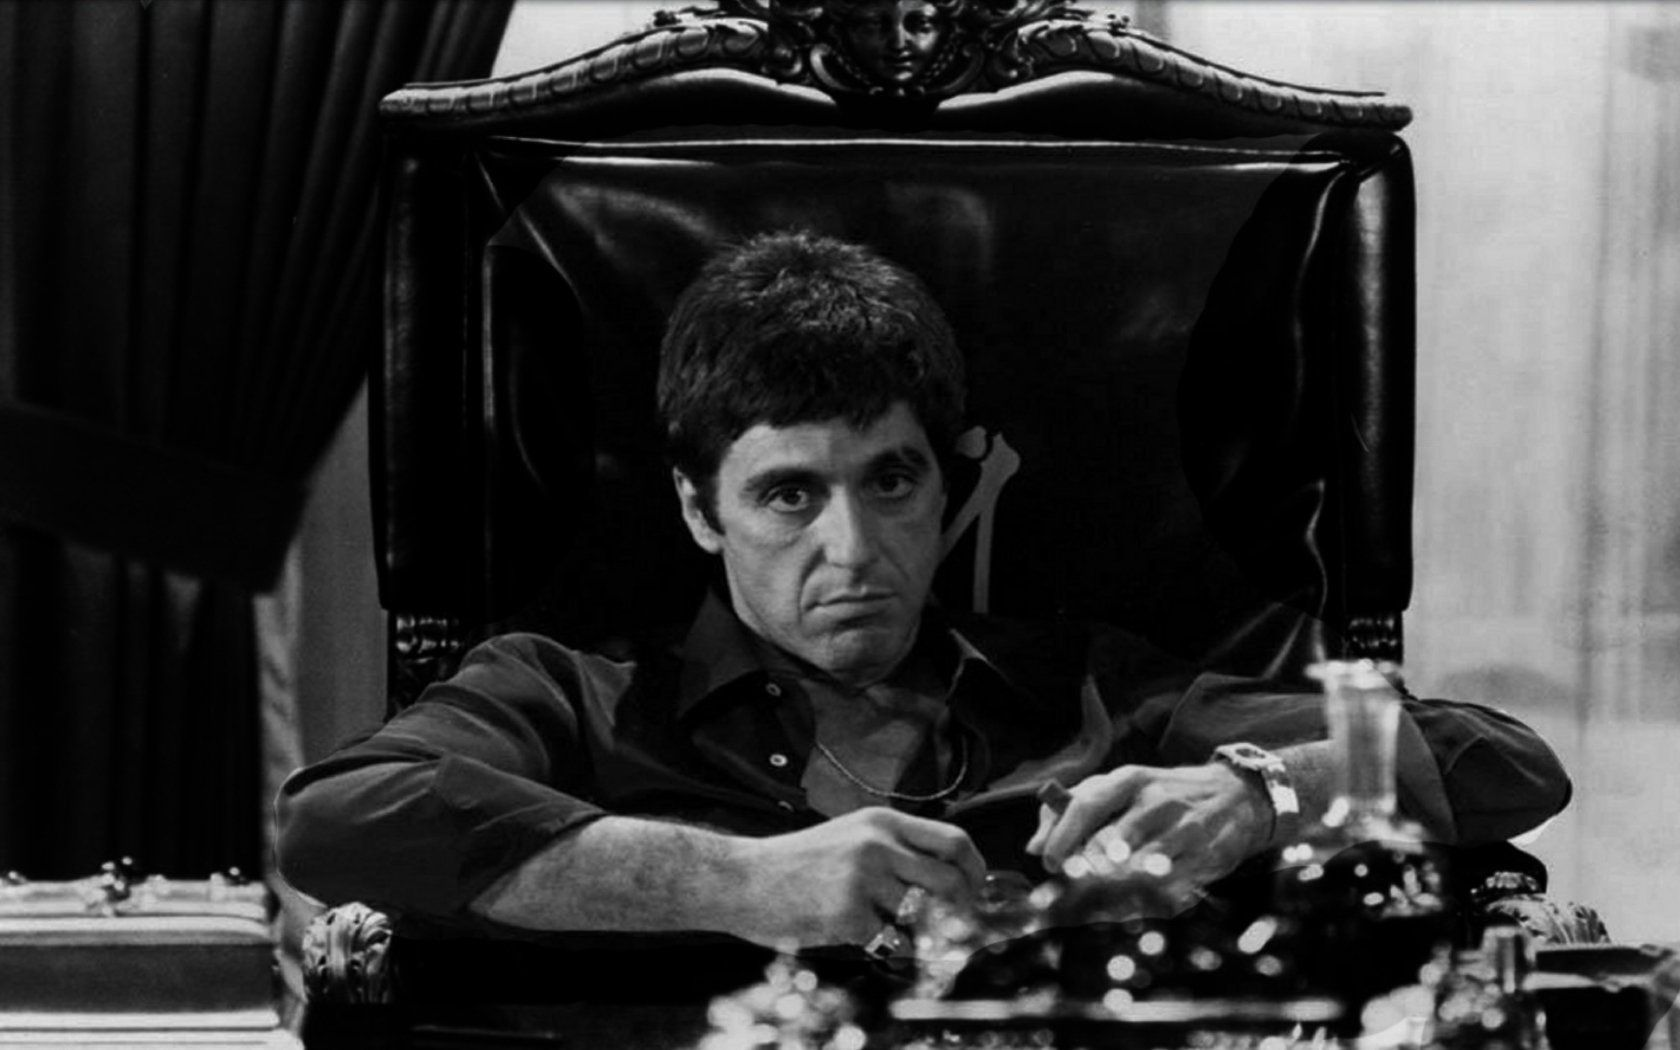 Ps4 Scarface Backgrounds Wallpaper Cave